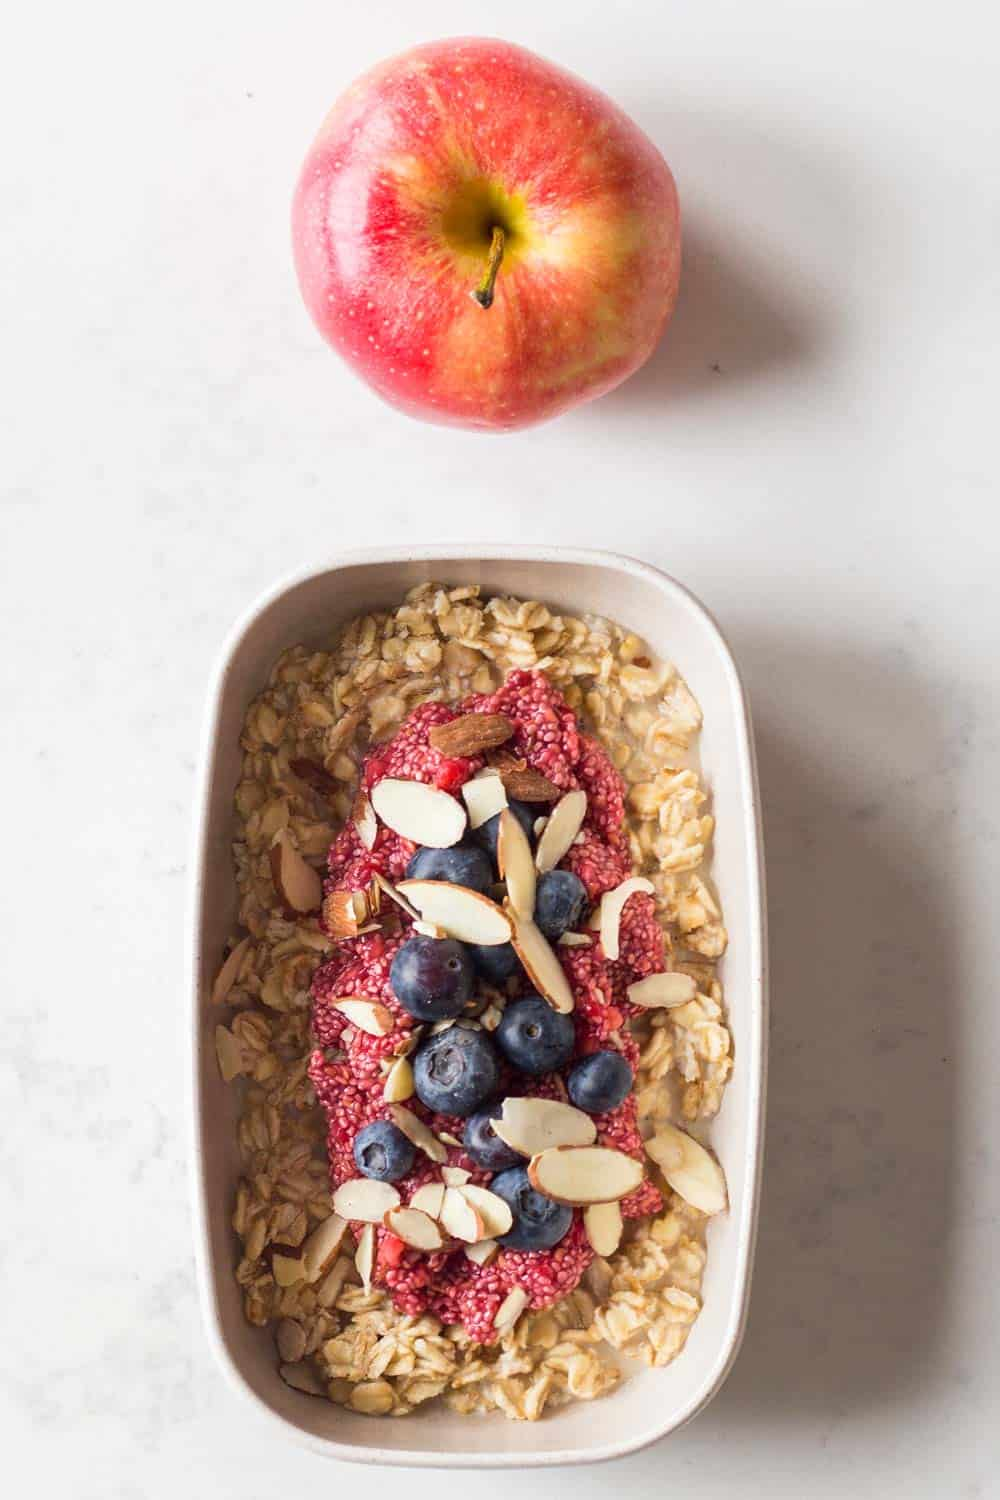 A Vegan Breakfast for a Nutritionally Balanced Vegan Meal Plan - maple-sweetened overnight oats made with almond milk, raspberry chia pudding, sliced almonds, blueberries and an apple.